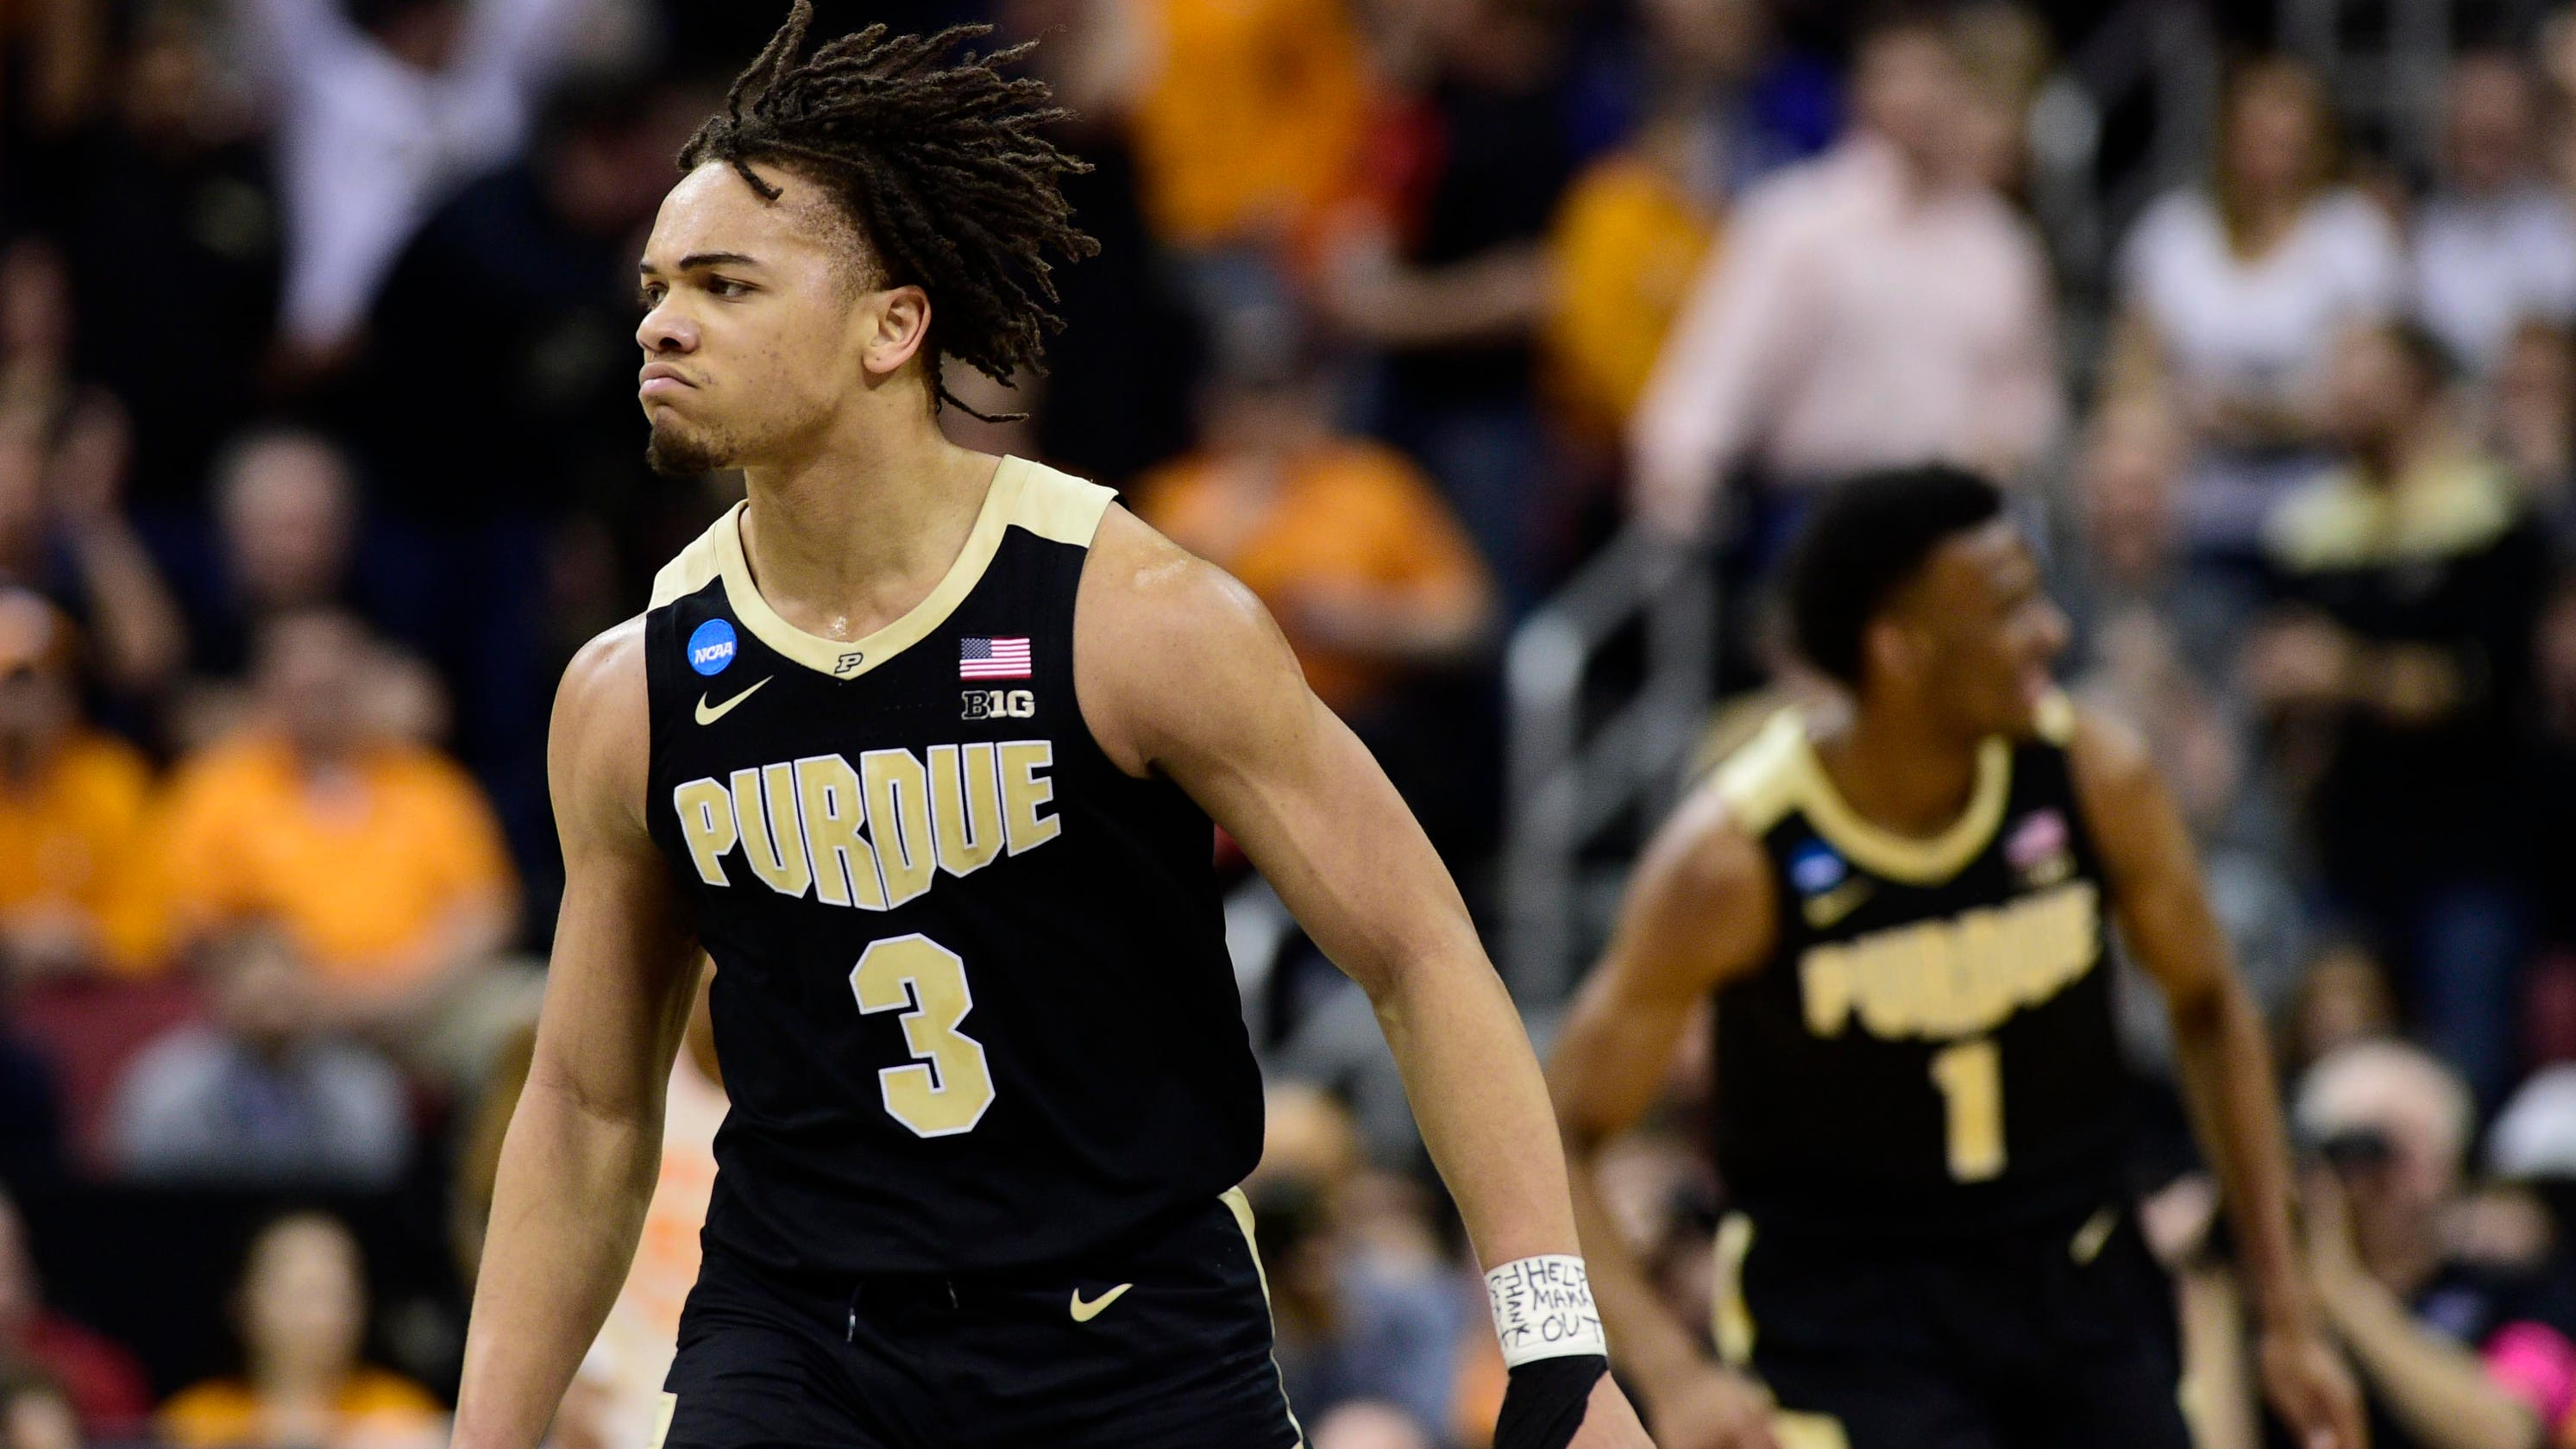 20d4d2d8bb55 Purdue basketball s Carsen Edwards preparing for undetermined NBA role